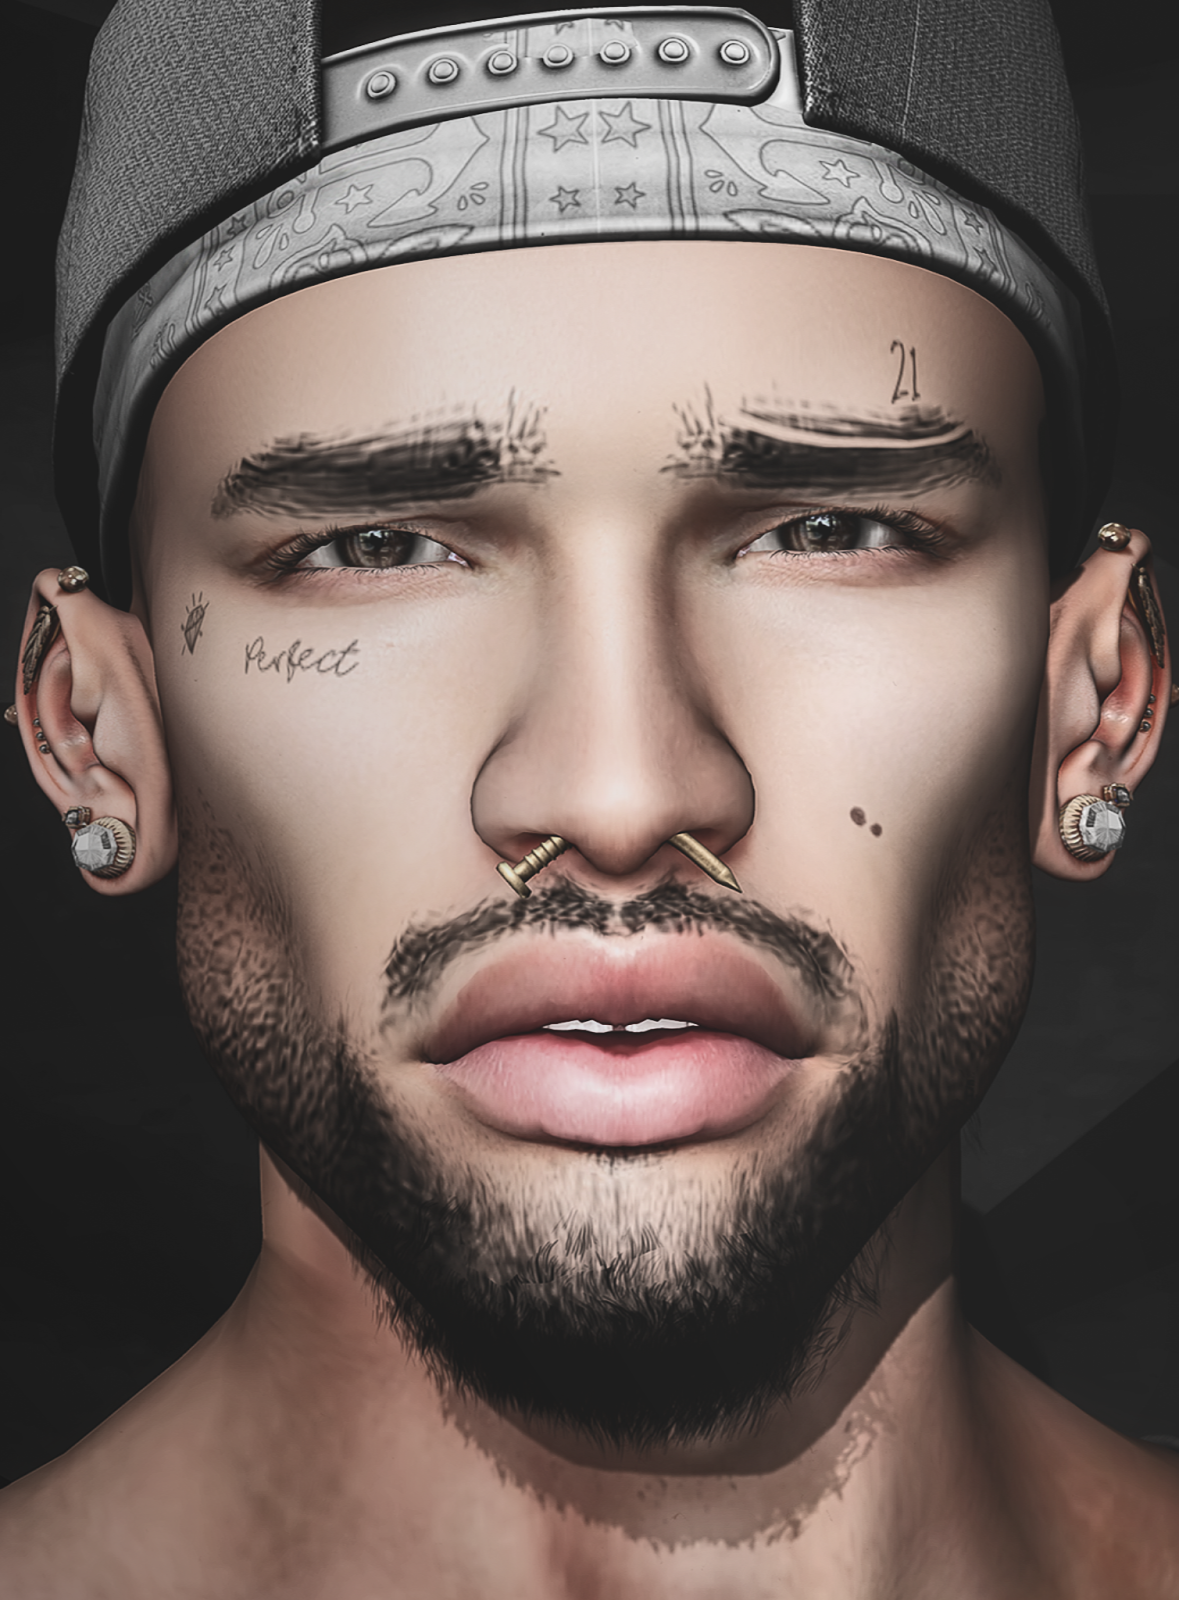 d8df9ce9d Brows - Beard - Face Tattoo: [Hipster Style] Raul COMBO @ Shiny Shabby  (September Round)